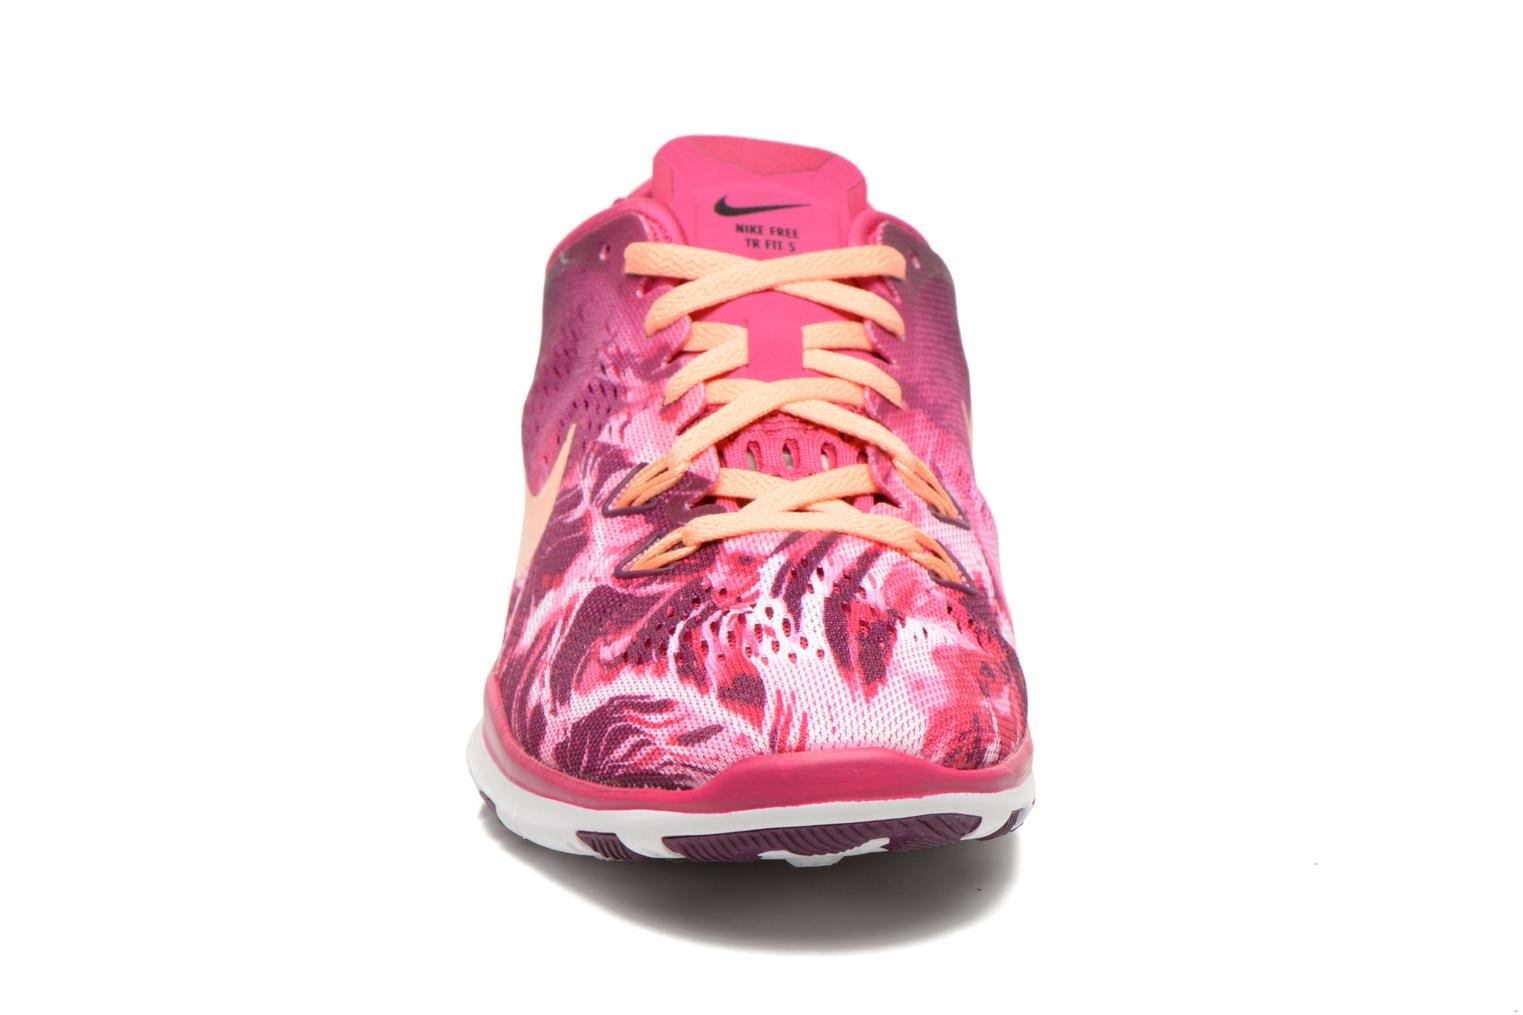 Wmns Nike Free 5.0 Tr Fit 5 Prt Fireberry/Snst Glow-Mlbrry-Blk